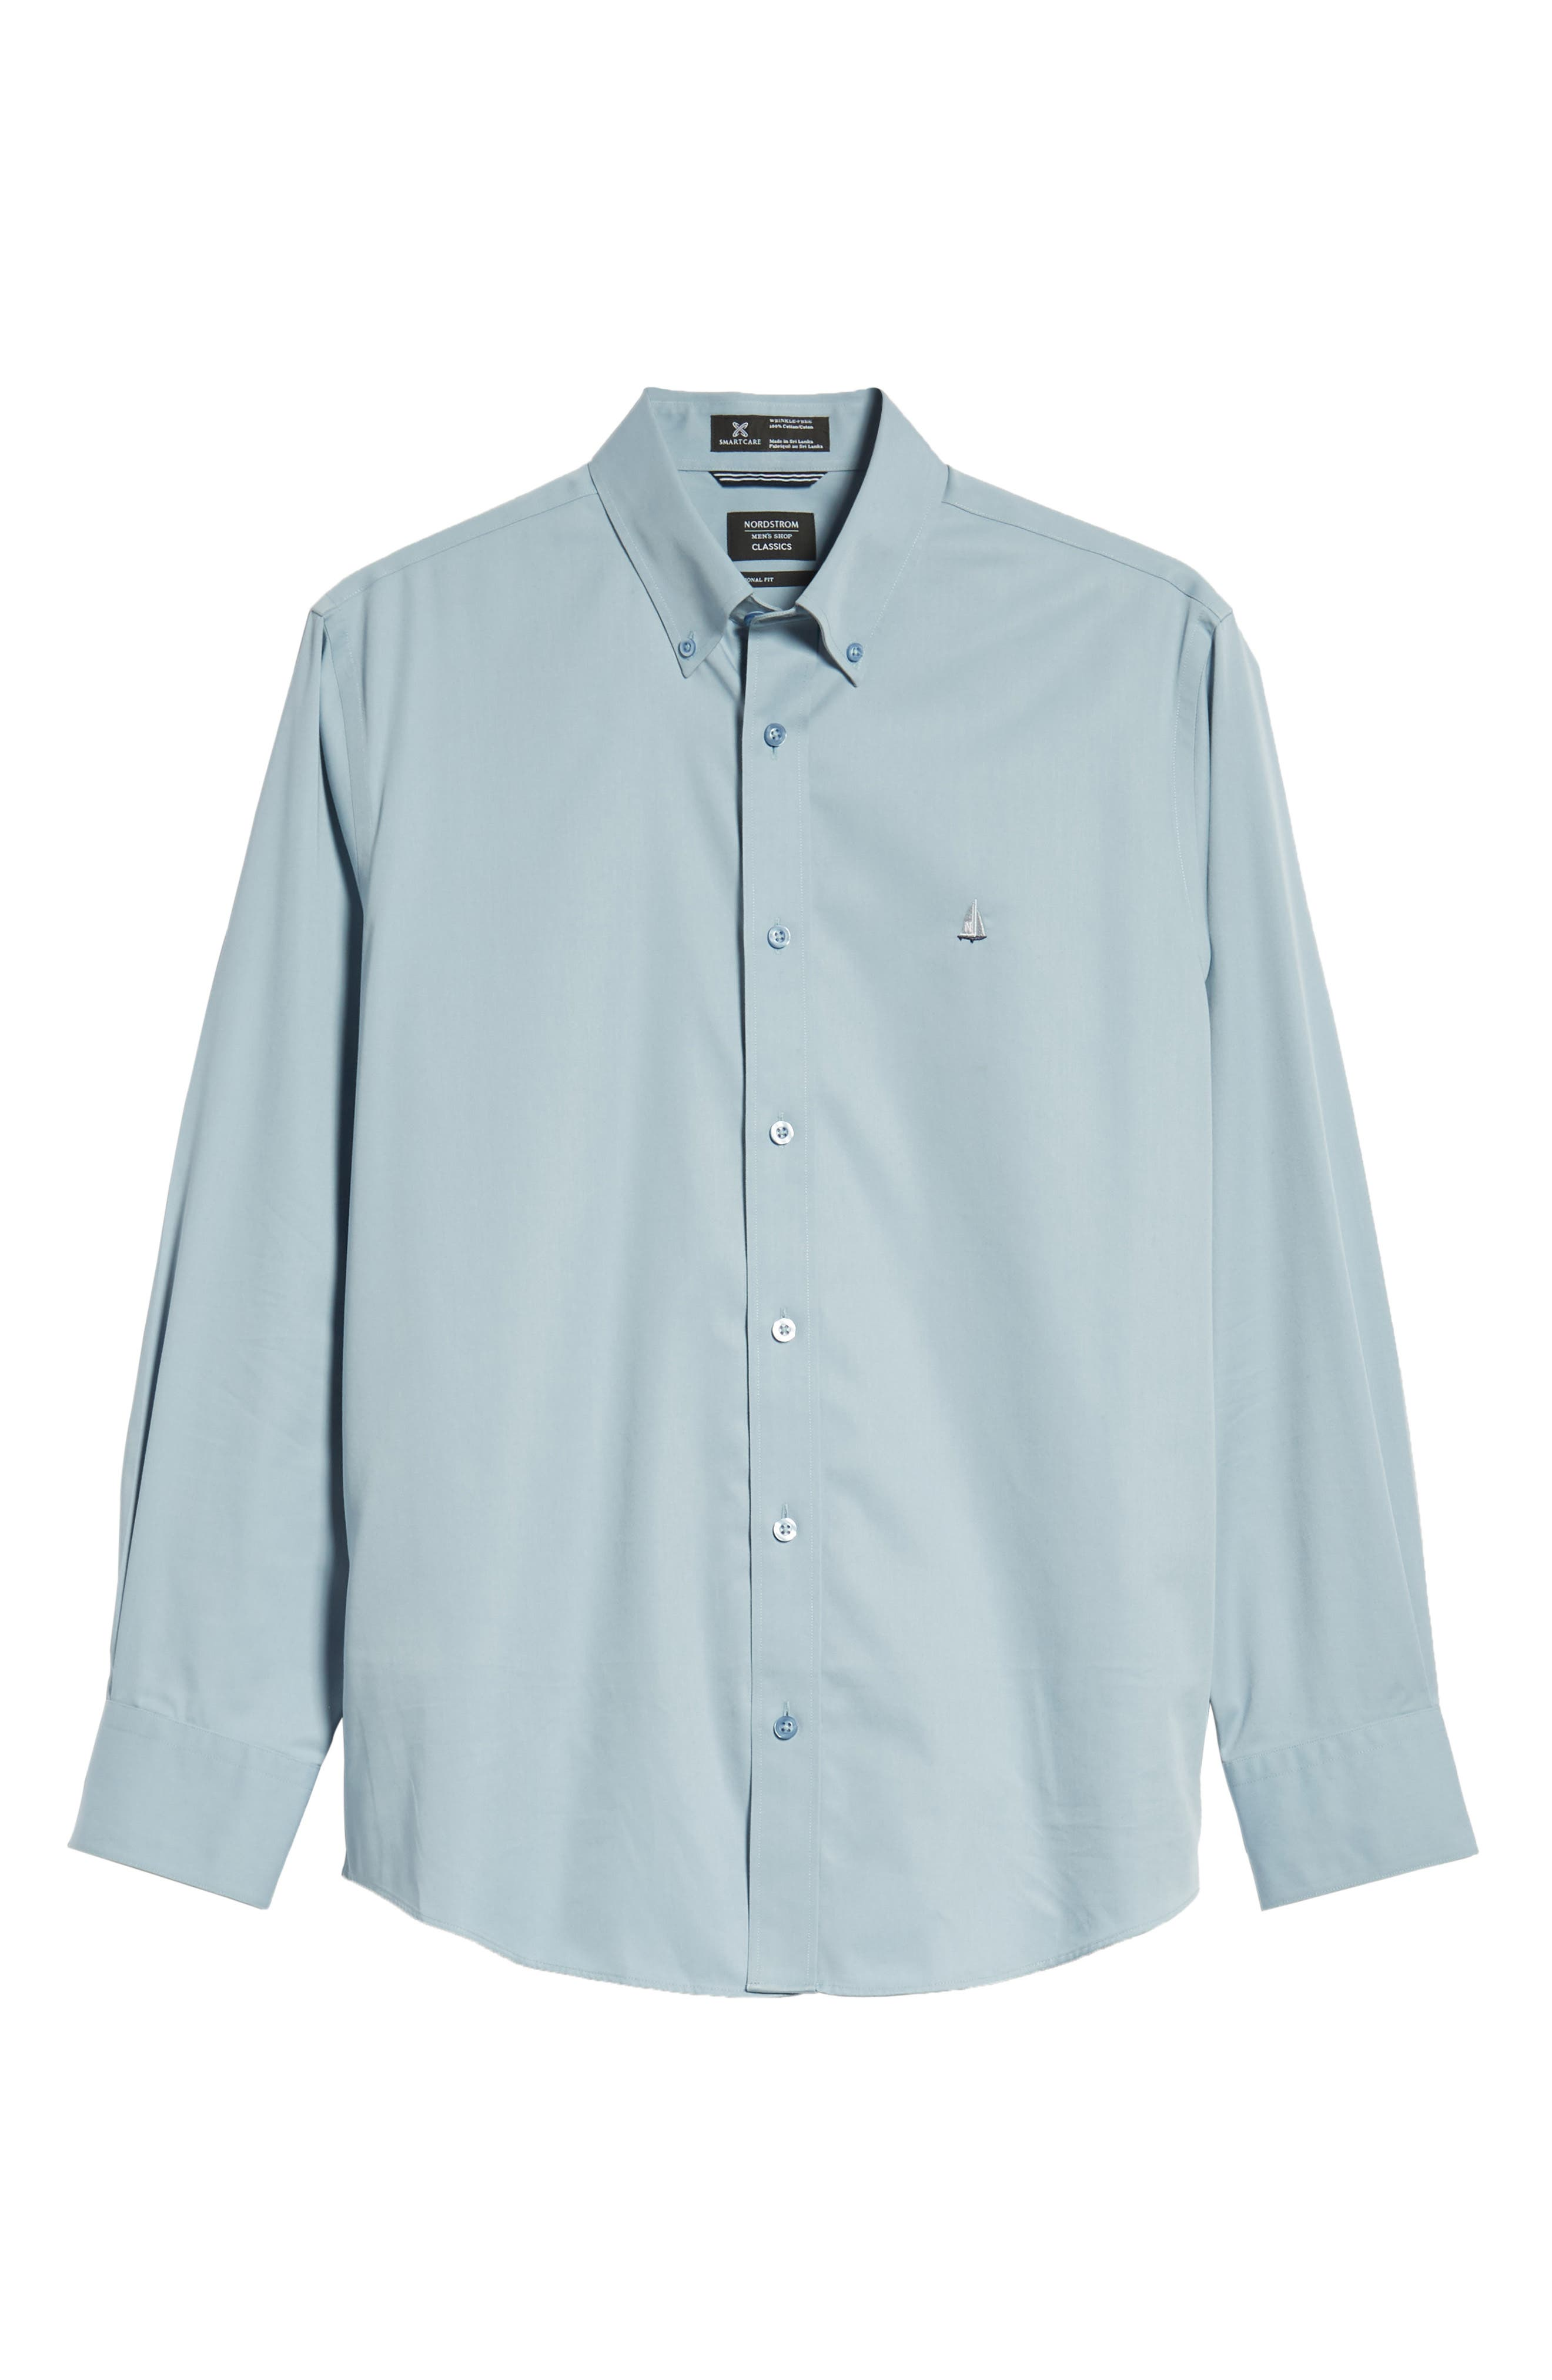 Smartcare<sup>™</sup> Traditional Fit Twill Boat Shirt,                             Alternate thumbnail 6, color,                             BLUE DRIZZLE